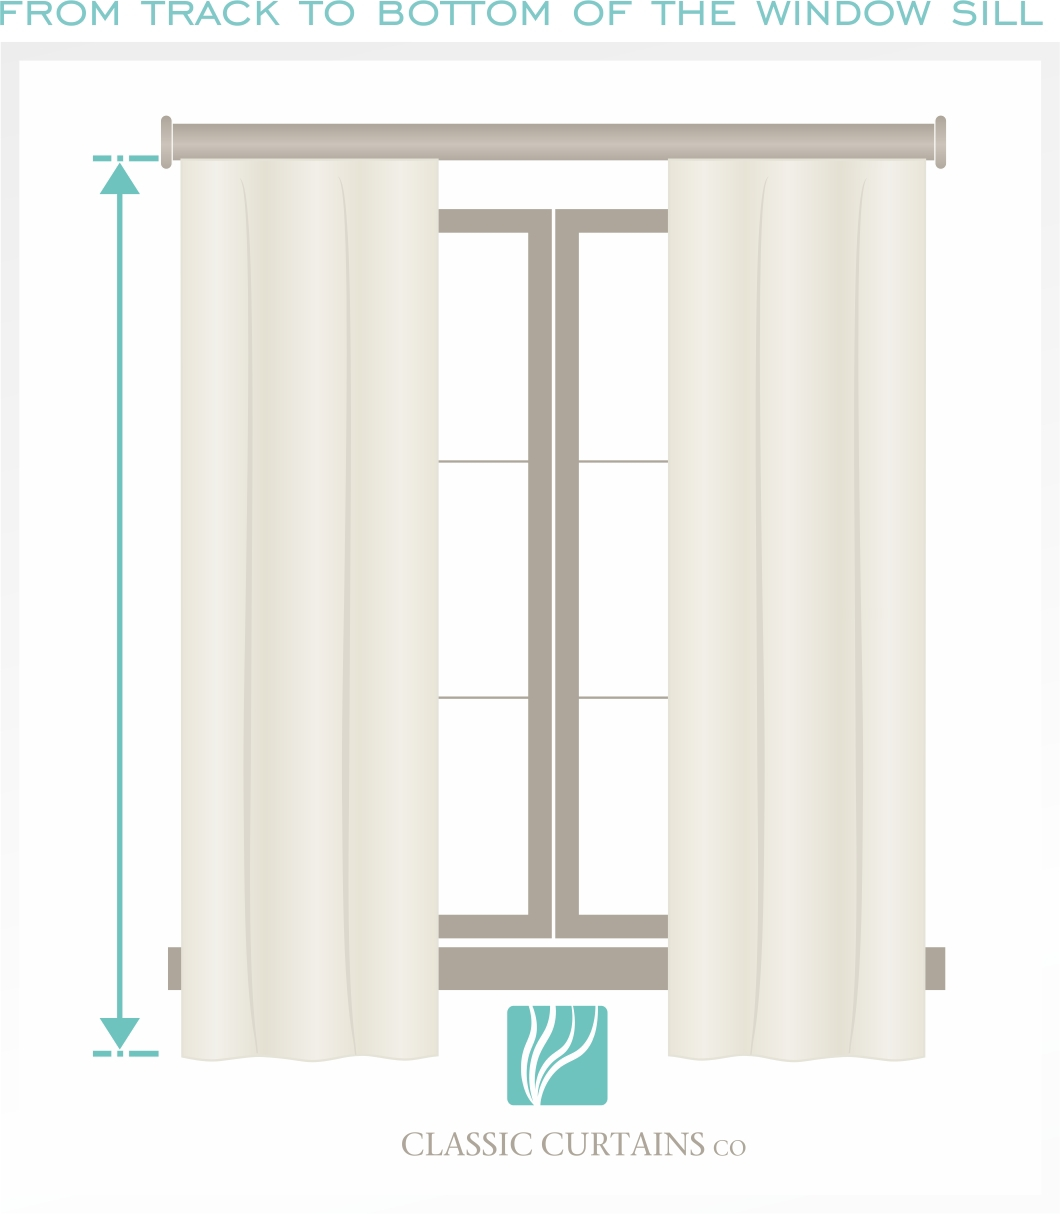 An example of a curtain hanging below the window sill if you would like the curtain to hang below.